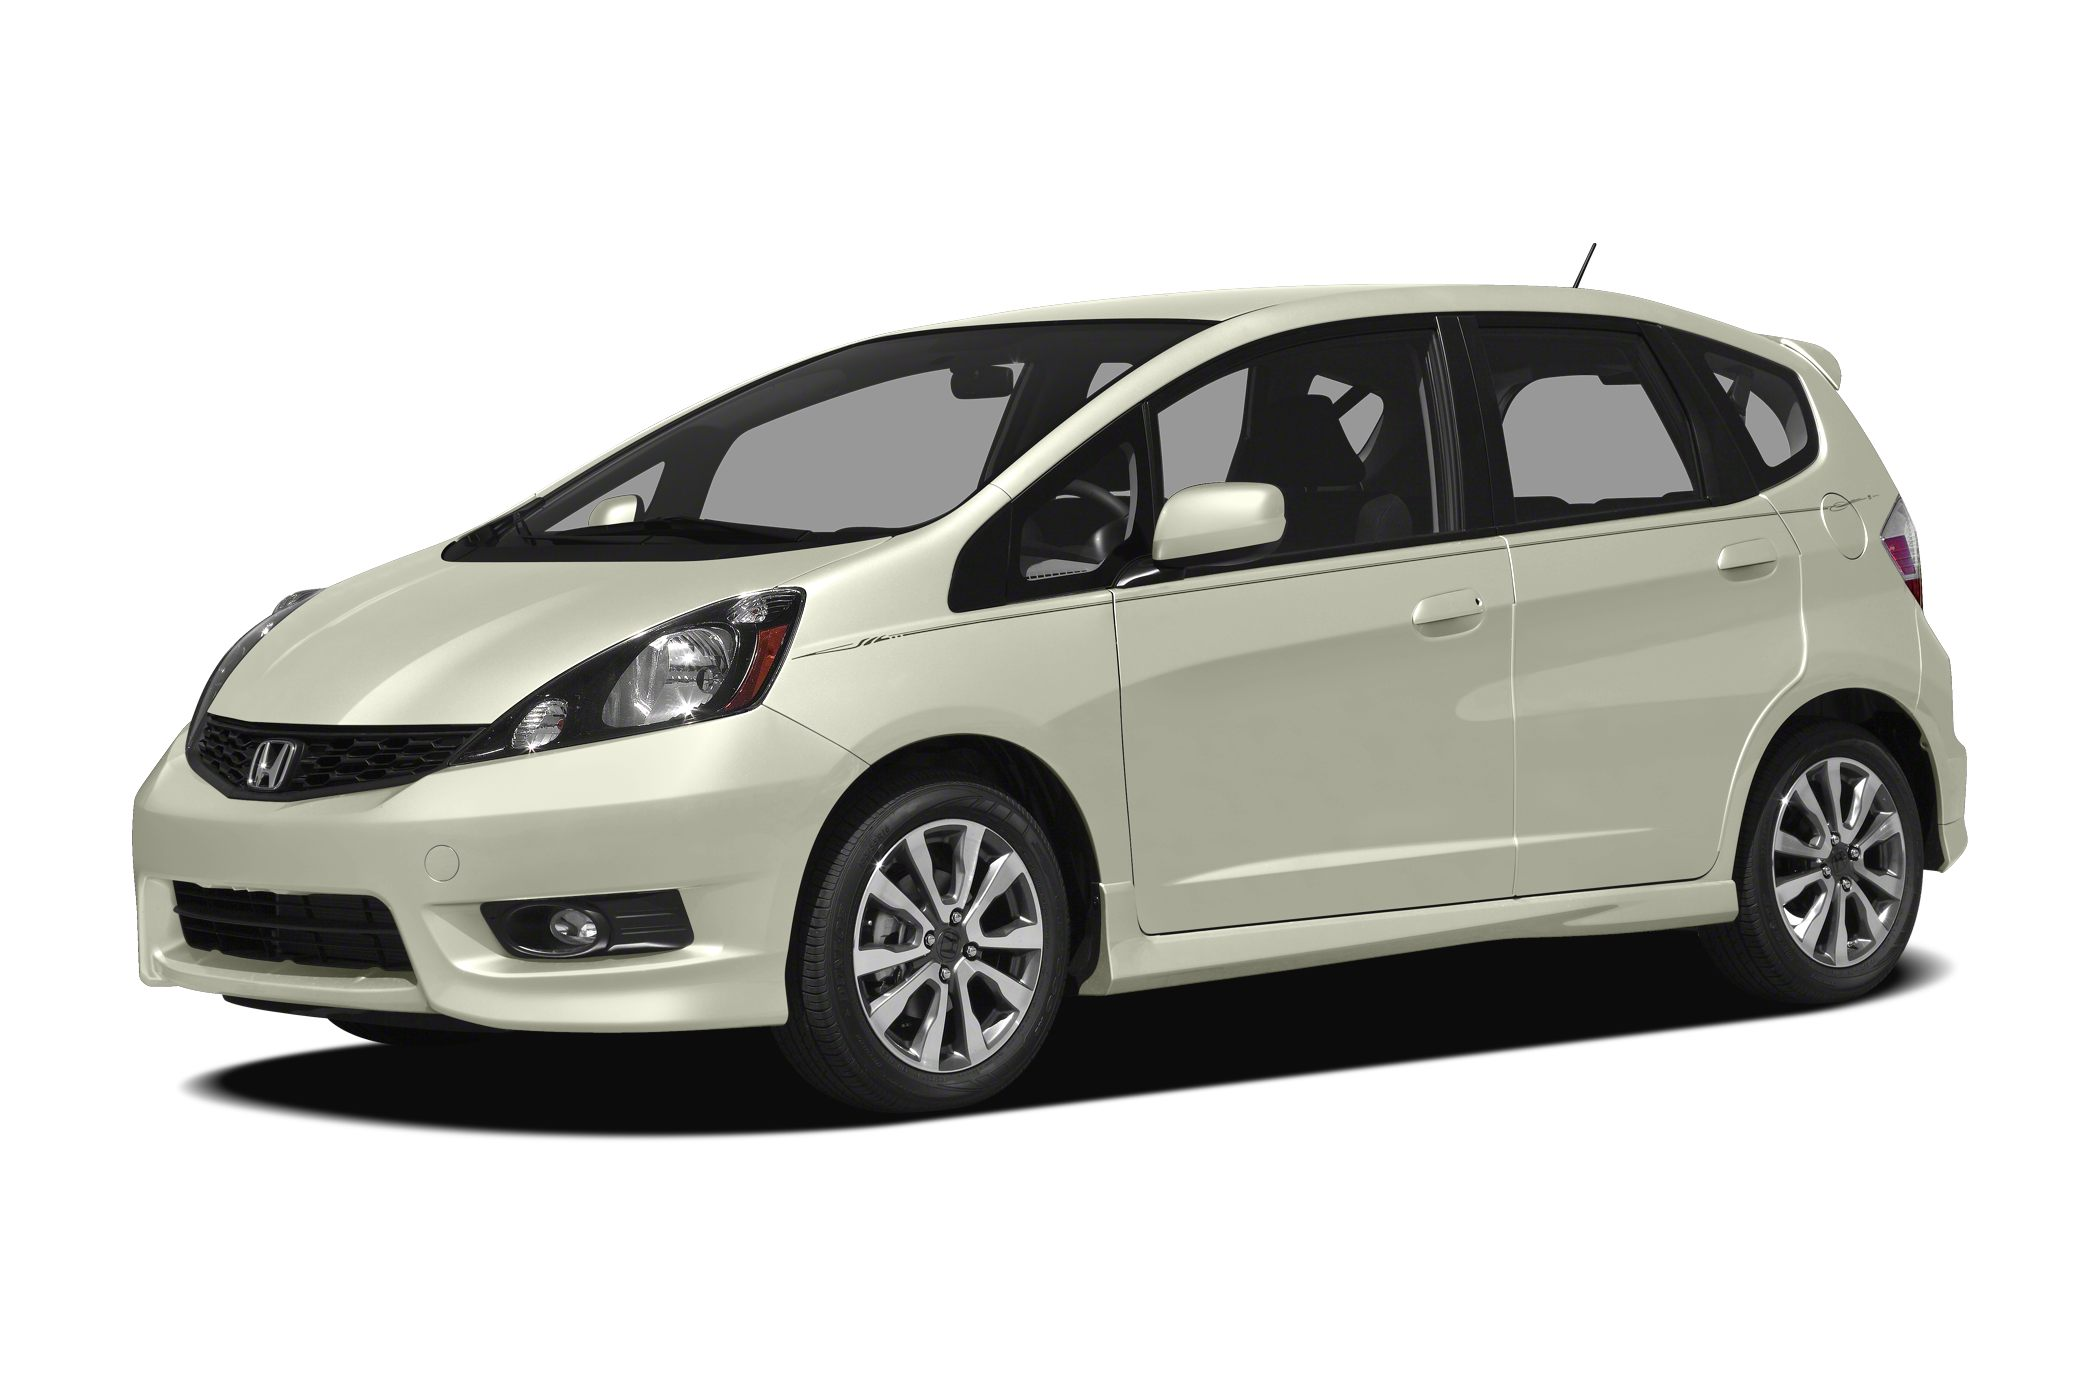 2012 Honda Fit Sport CARFAX 1-Owner EPA 33 MPG Hwy27 MPG City Sport trim Vortex Blue Pearl ext